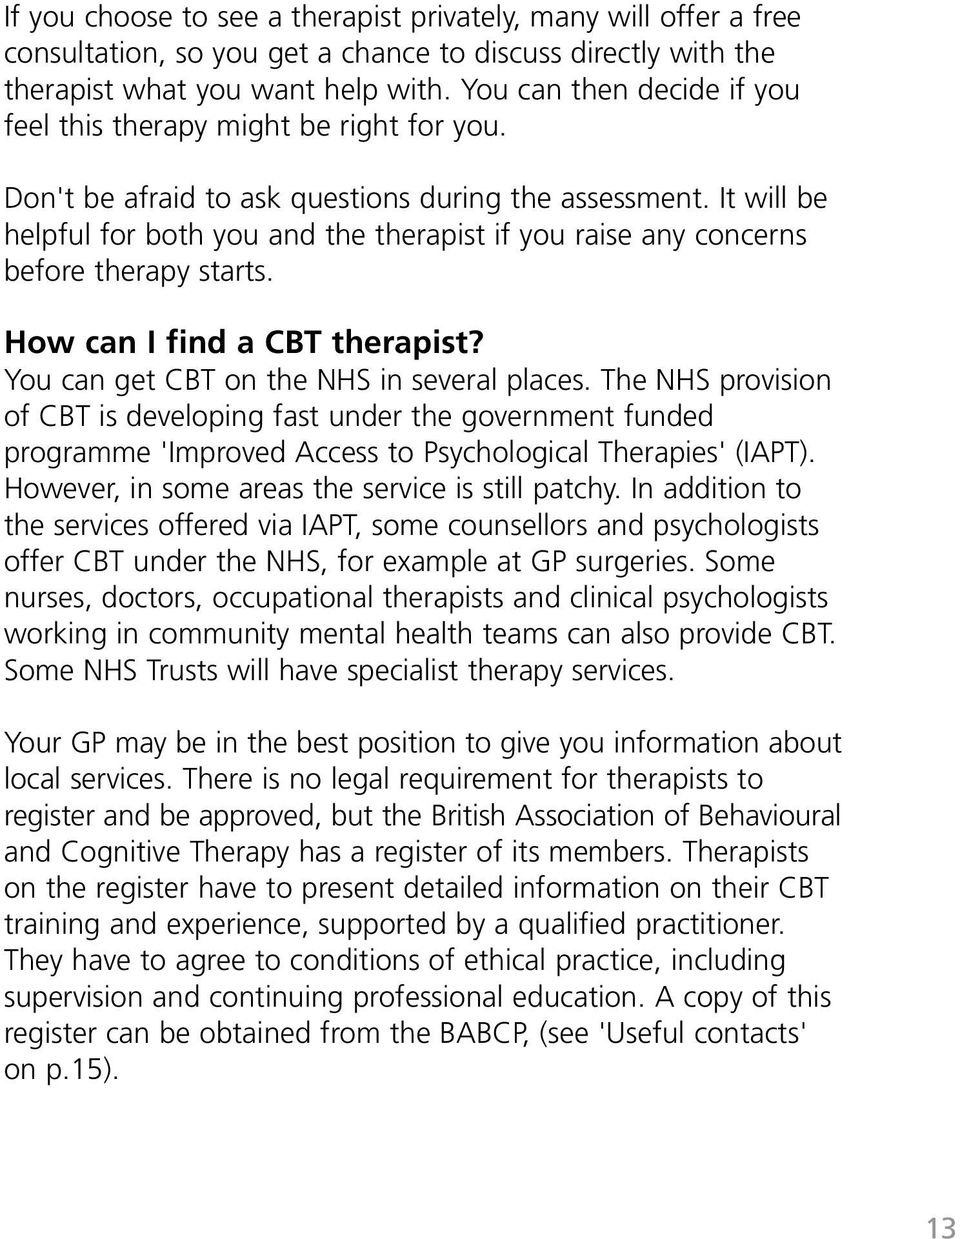 It will be helpful for both you and the therapist if you raise any concerns before therapy starts. How can I find a CBT therapist? You can get CBT on the NHS in several places.